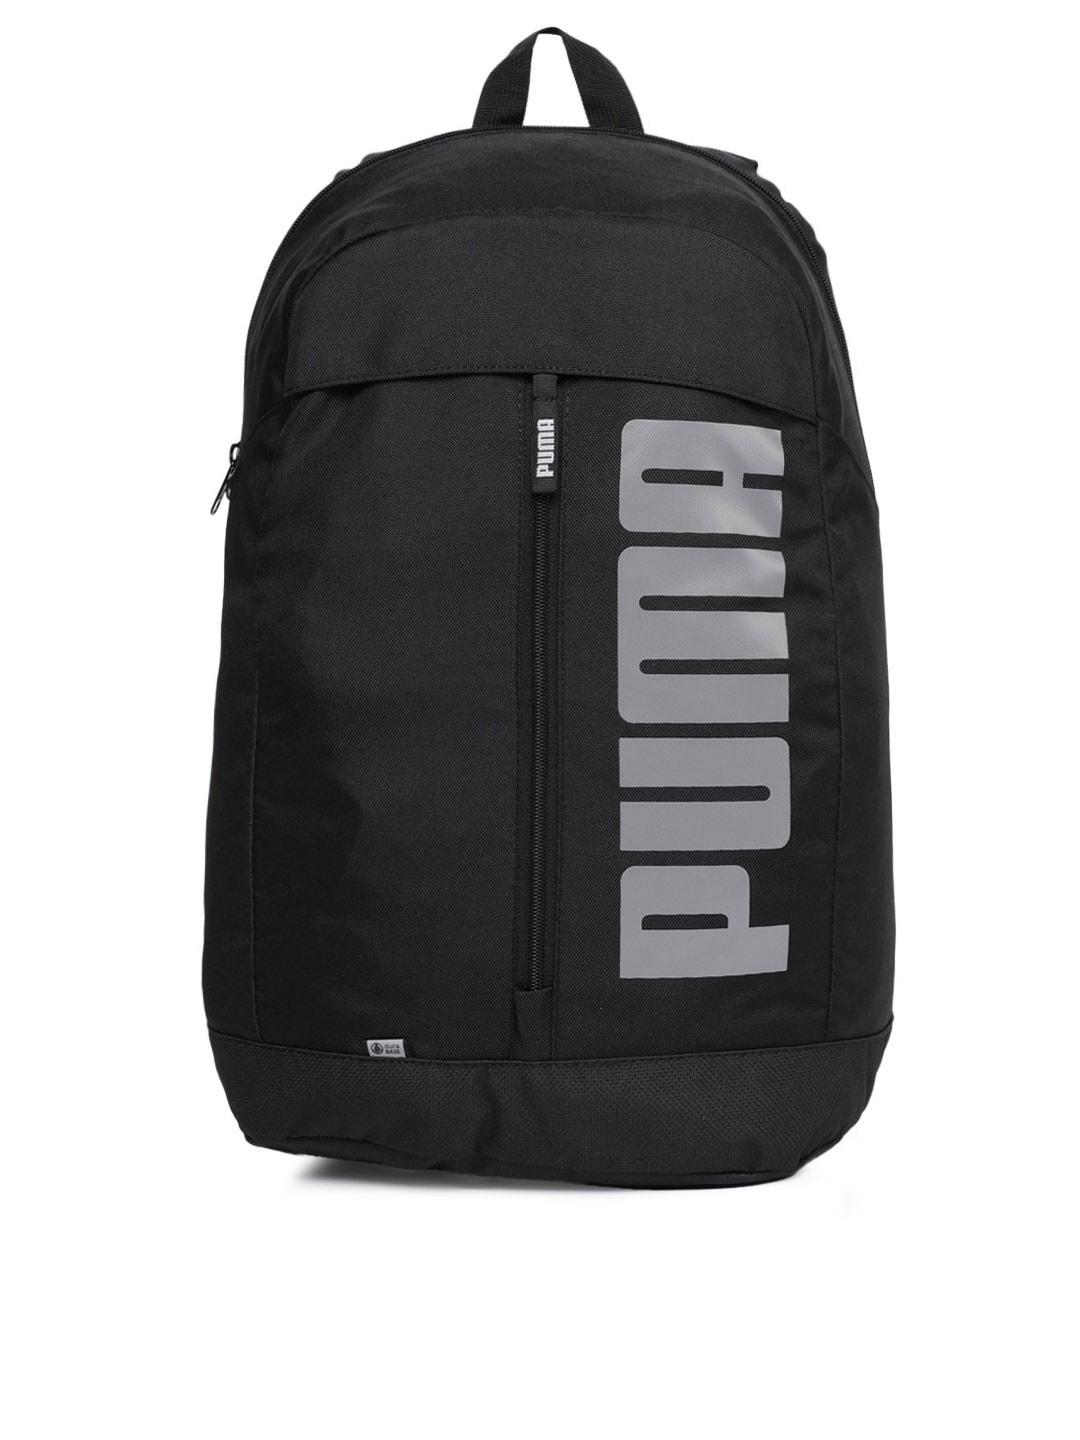 2e4d2d72cc16 Sports Puma Lotto Jackets Backpacks Bra - Buy Sports Puma Lotto Jackets  Backpacks Bra online in India